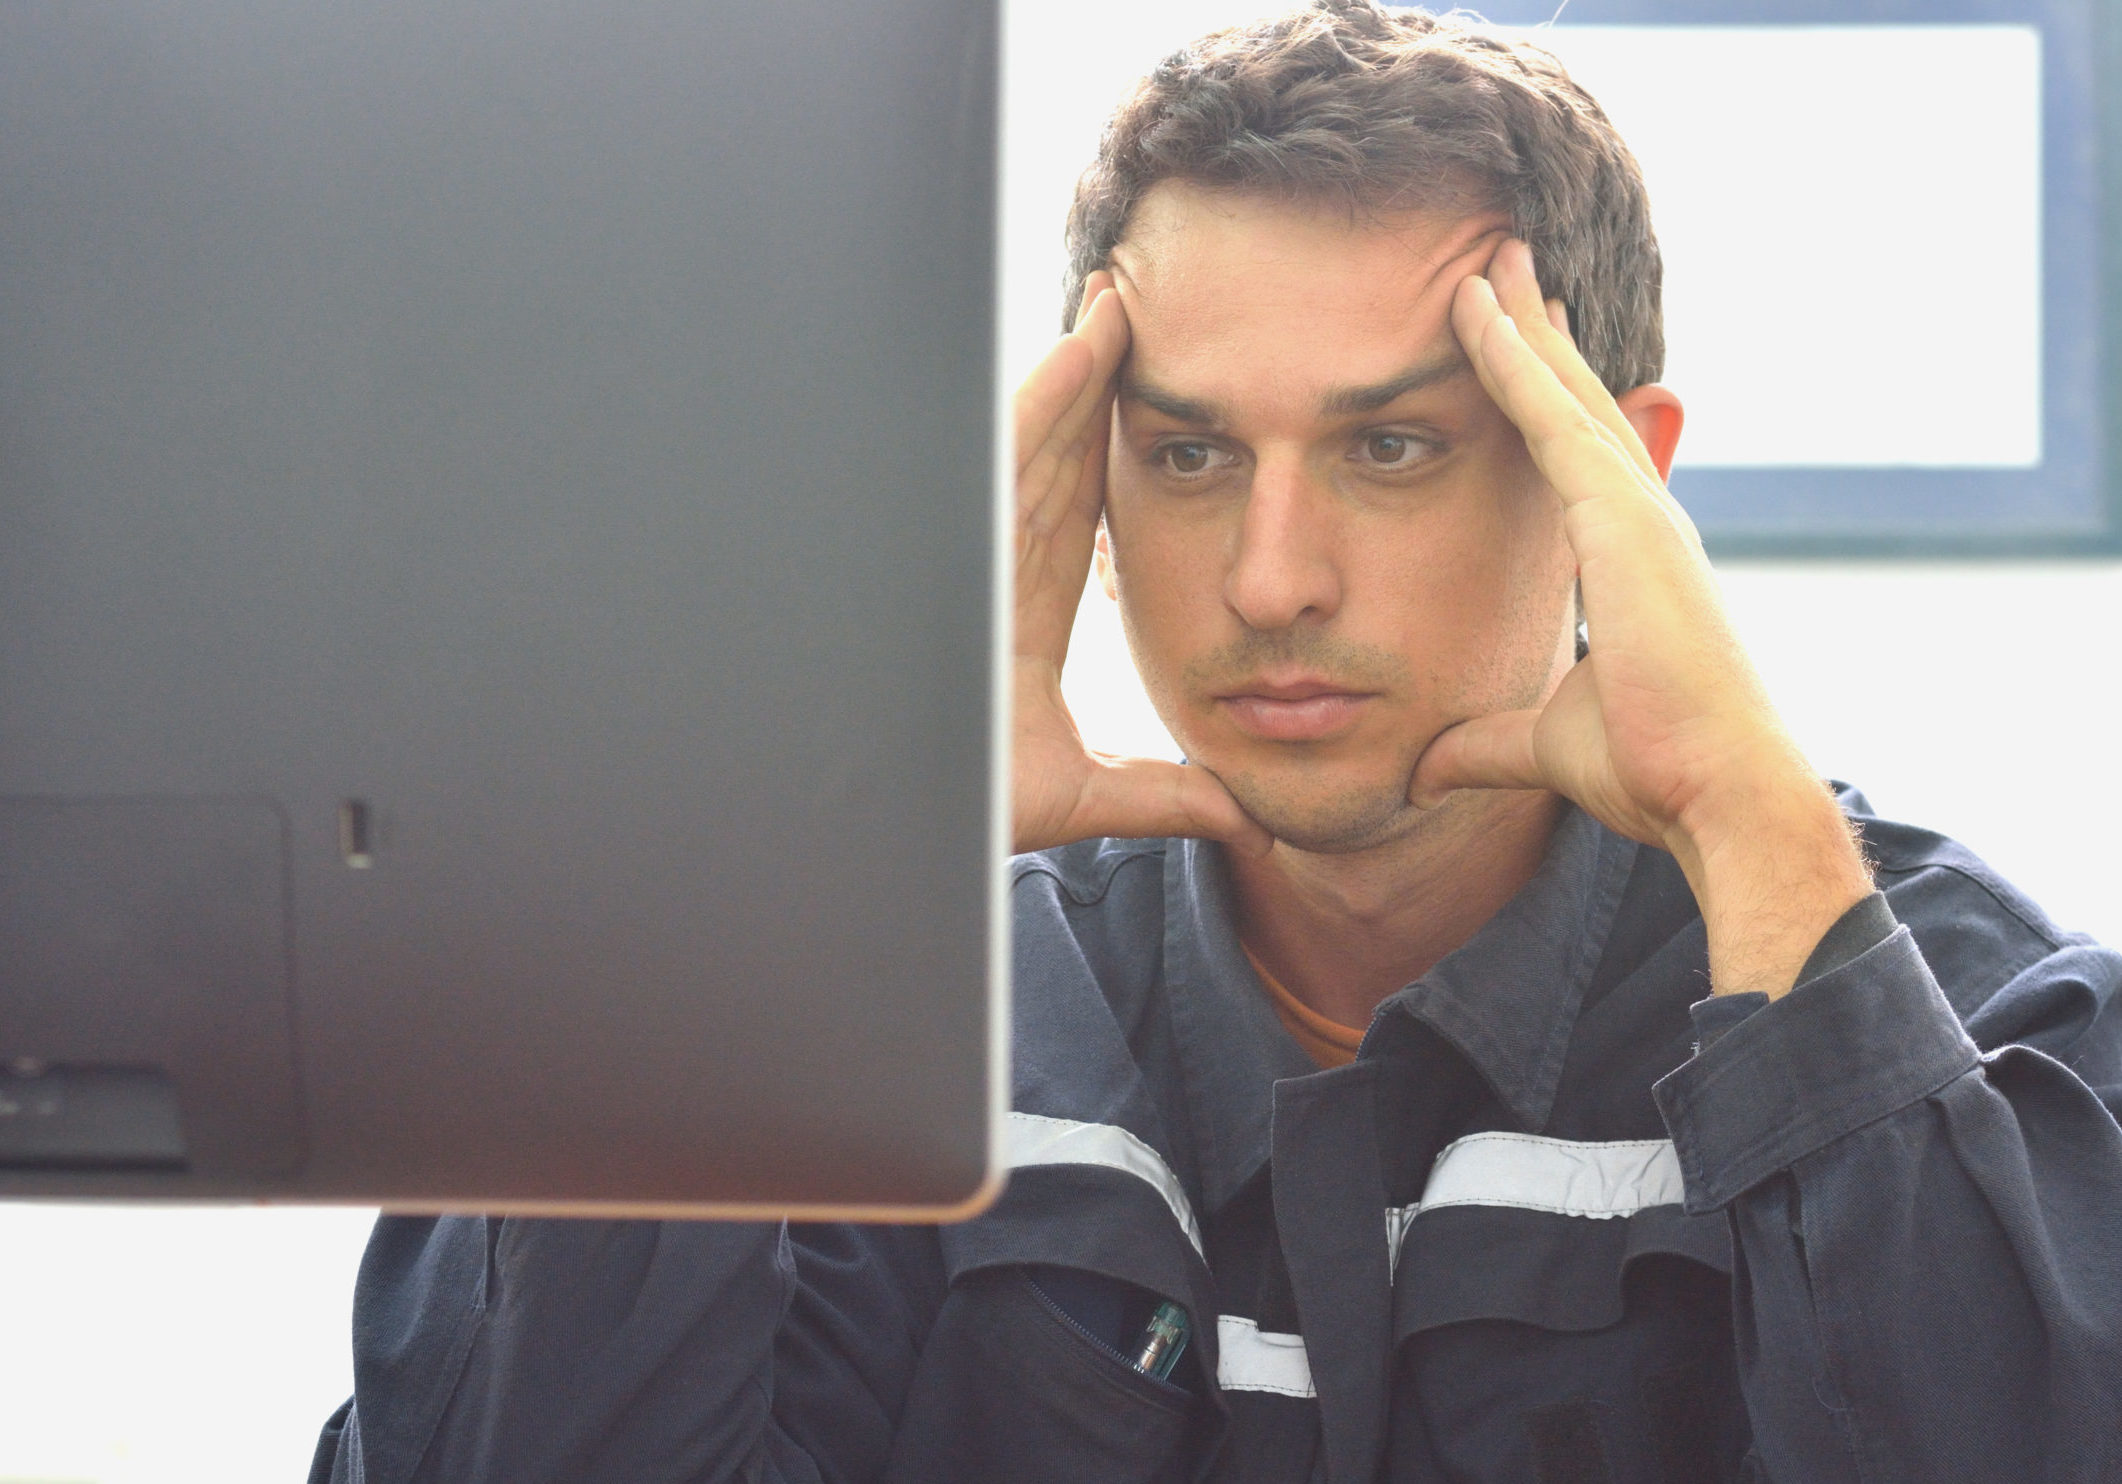 Technician working hard on computer in control room.